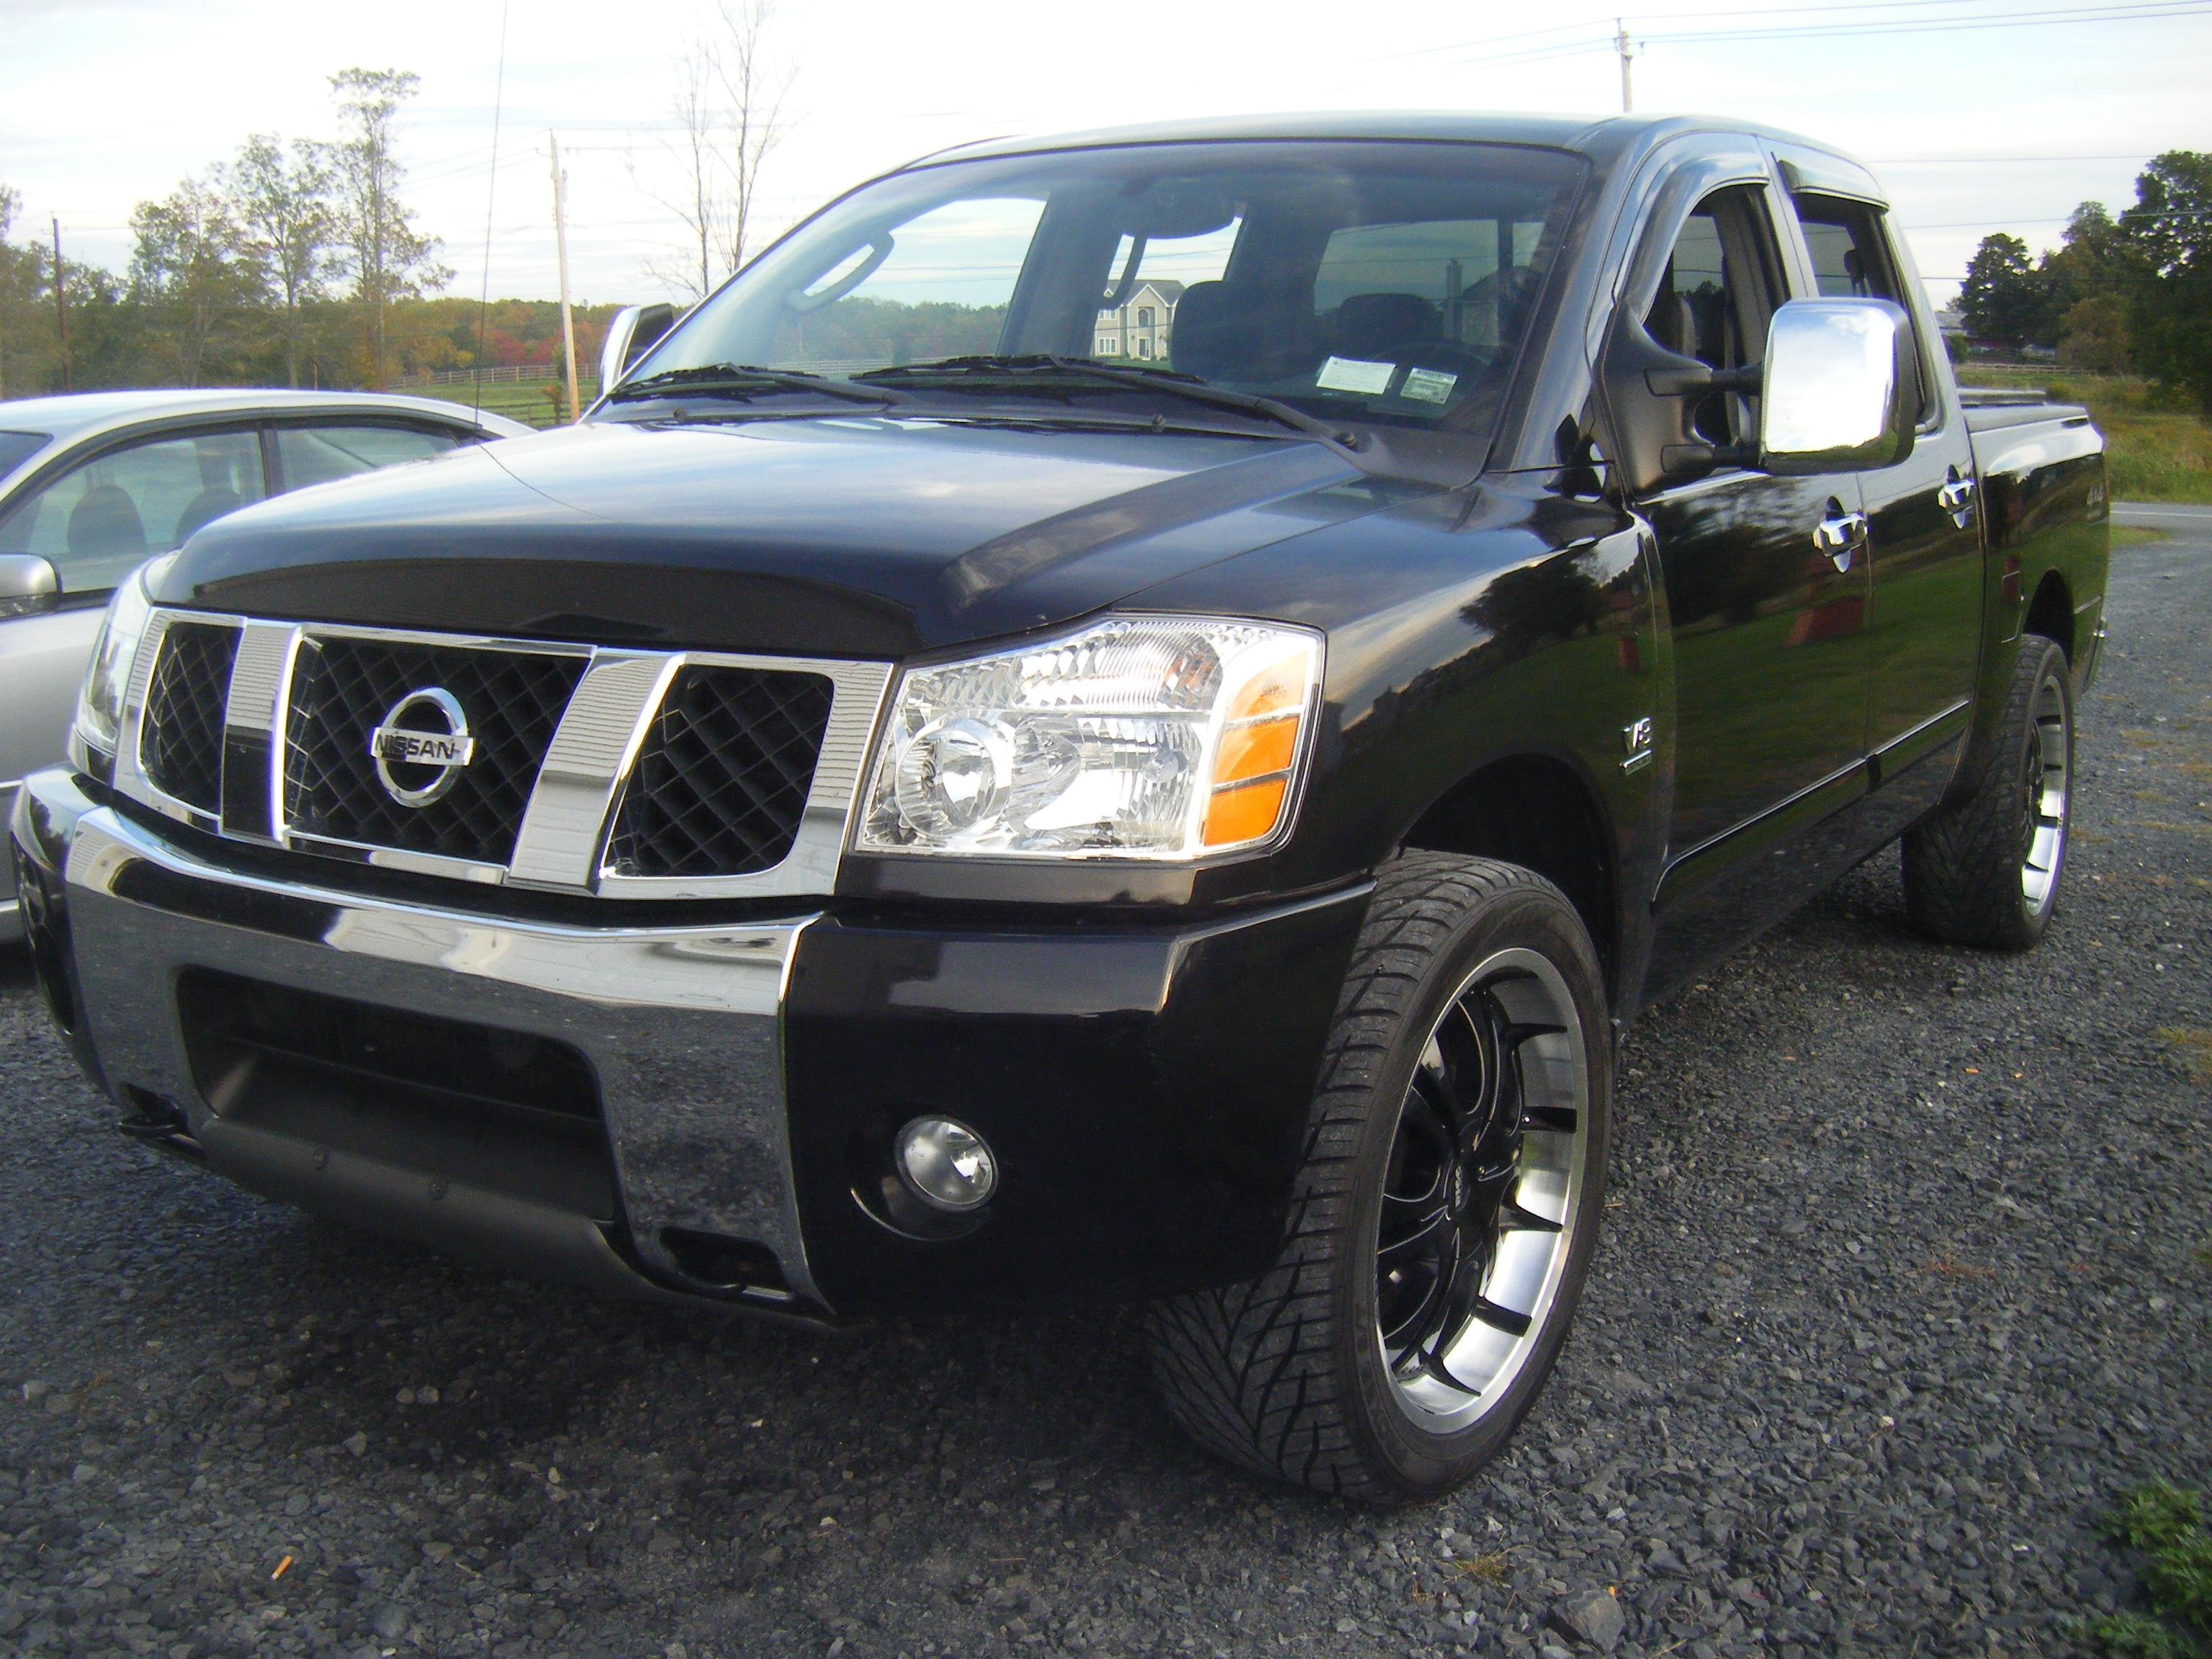 purcy2 2004 nissan titan crew cab specs photos modification info at cardomain. Black Bedroom Furniture Sets. Home Design Ideas